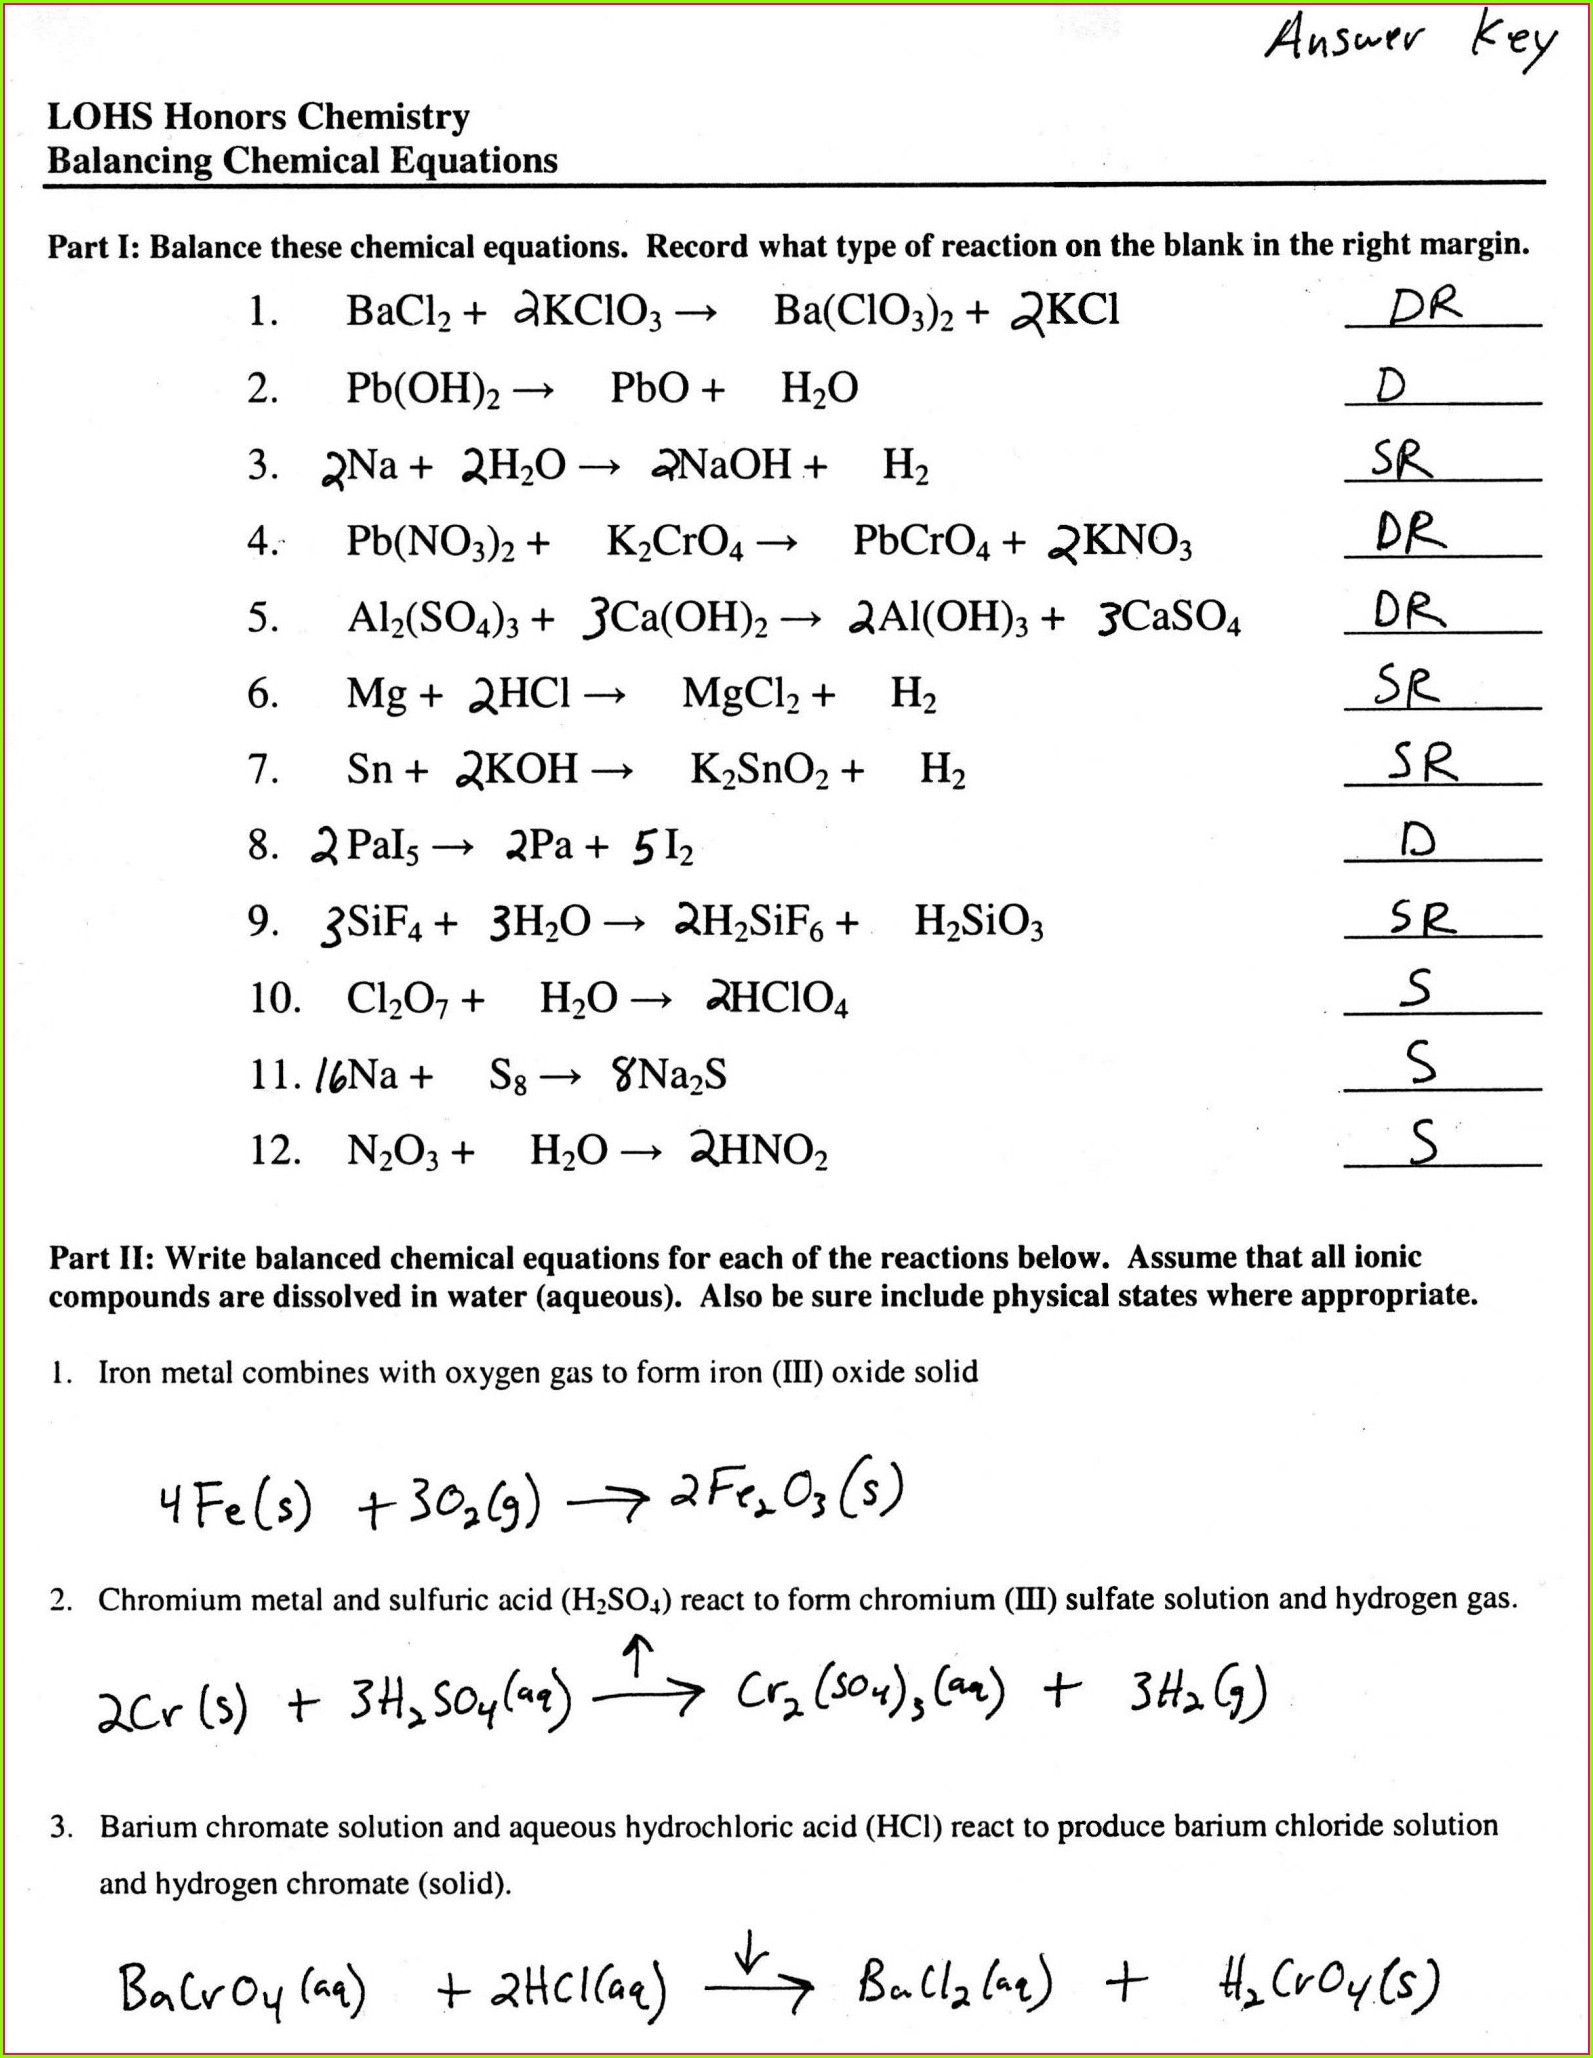 Worksheet 1 Word And Skeleton Equations Answer Key